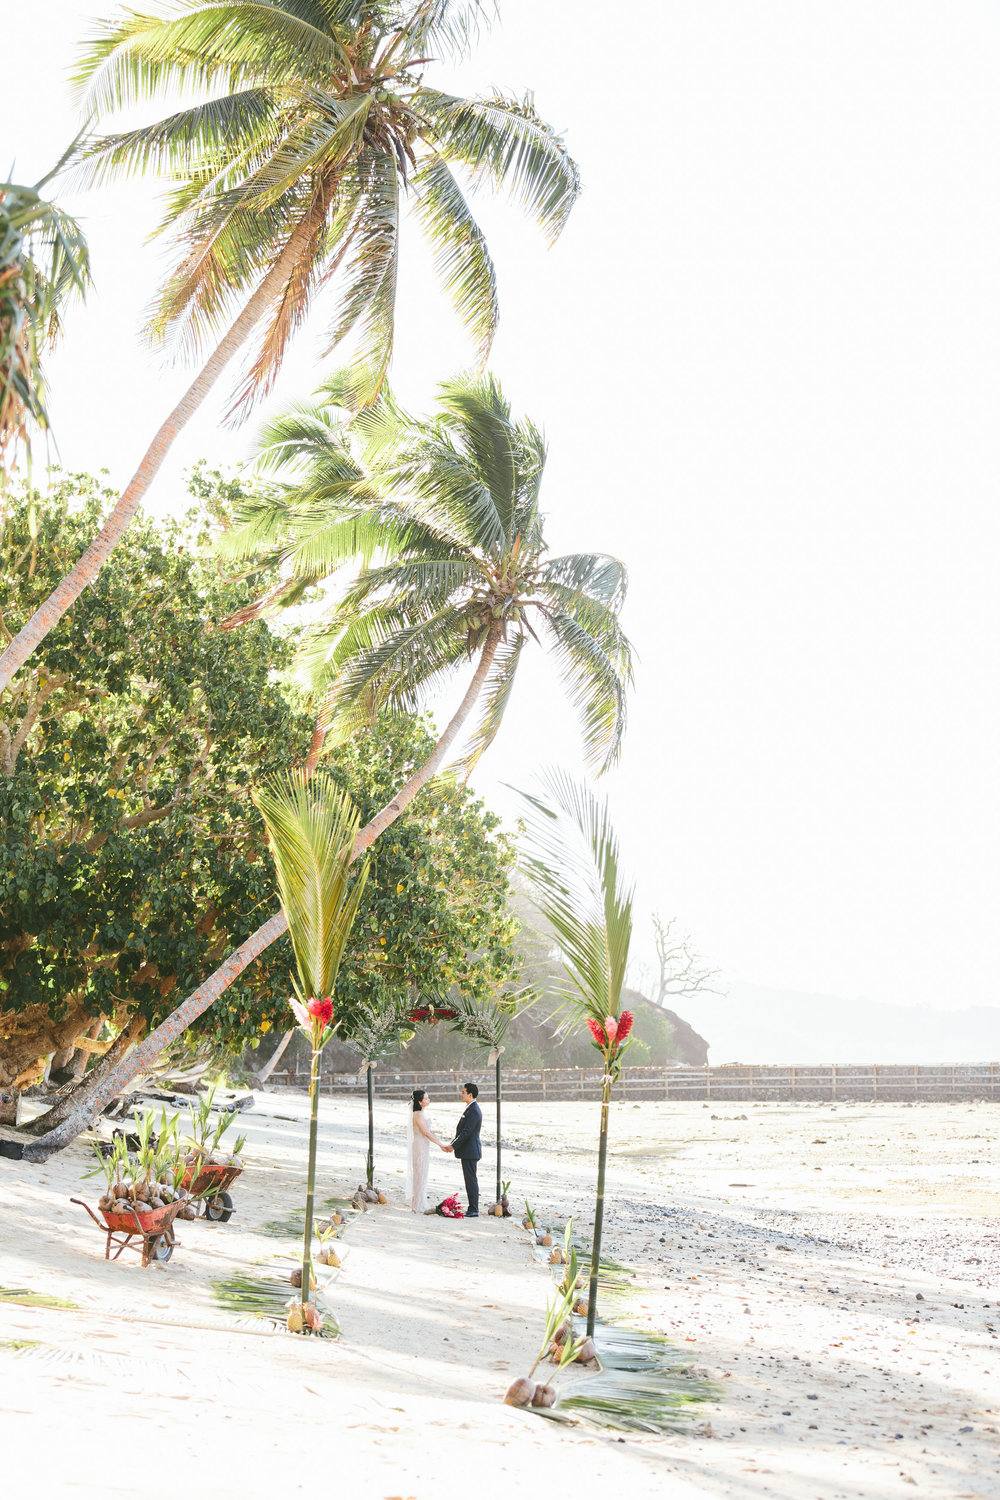 Fiji Beach Wedding Elopement Ceremony - The Remote Resort Fiji Islands